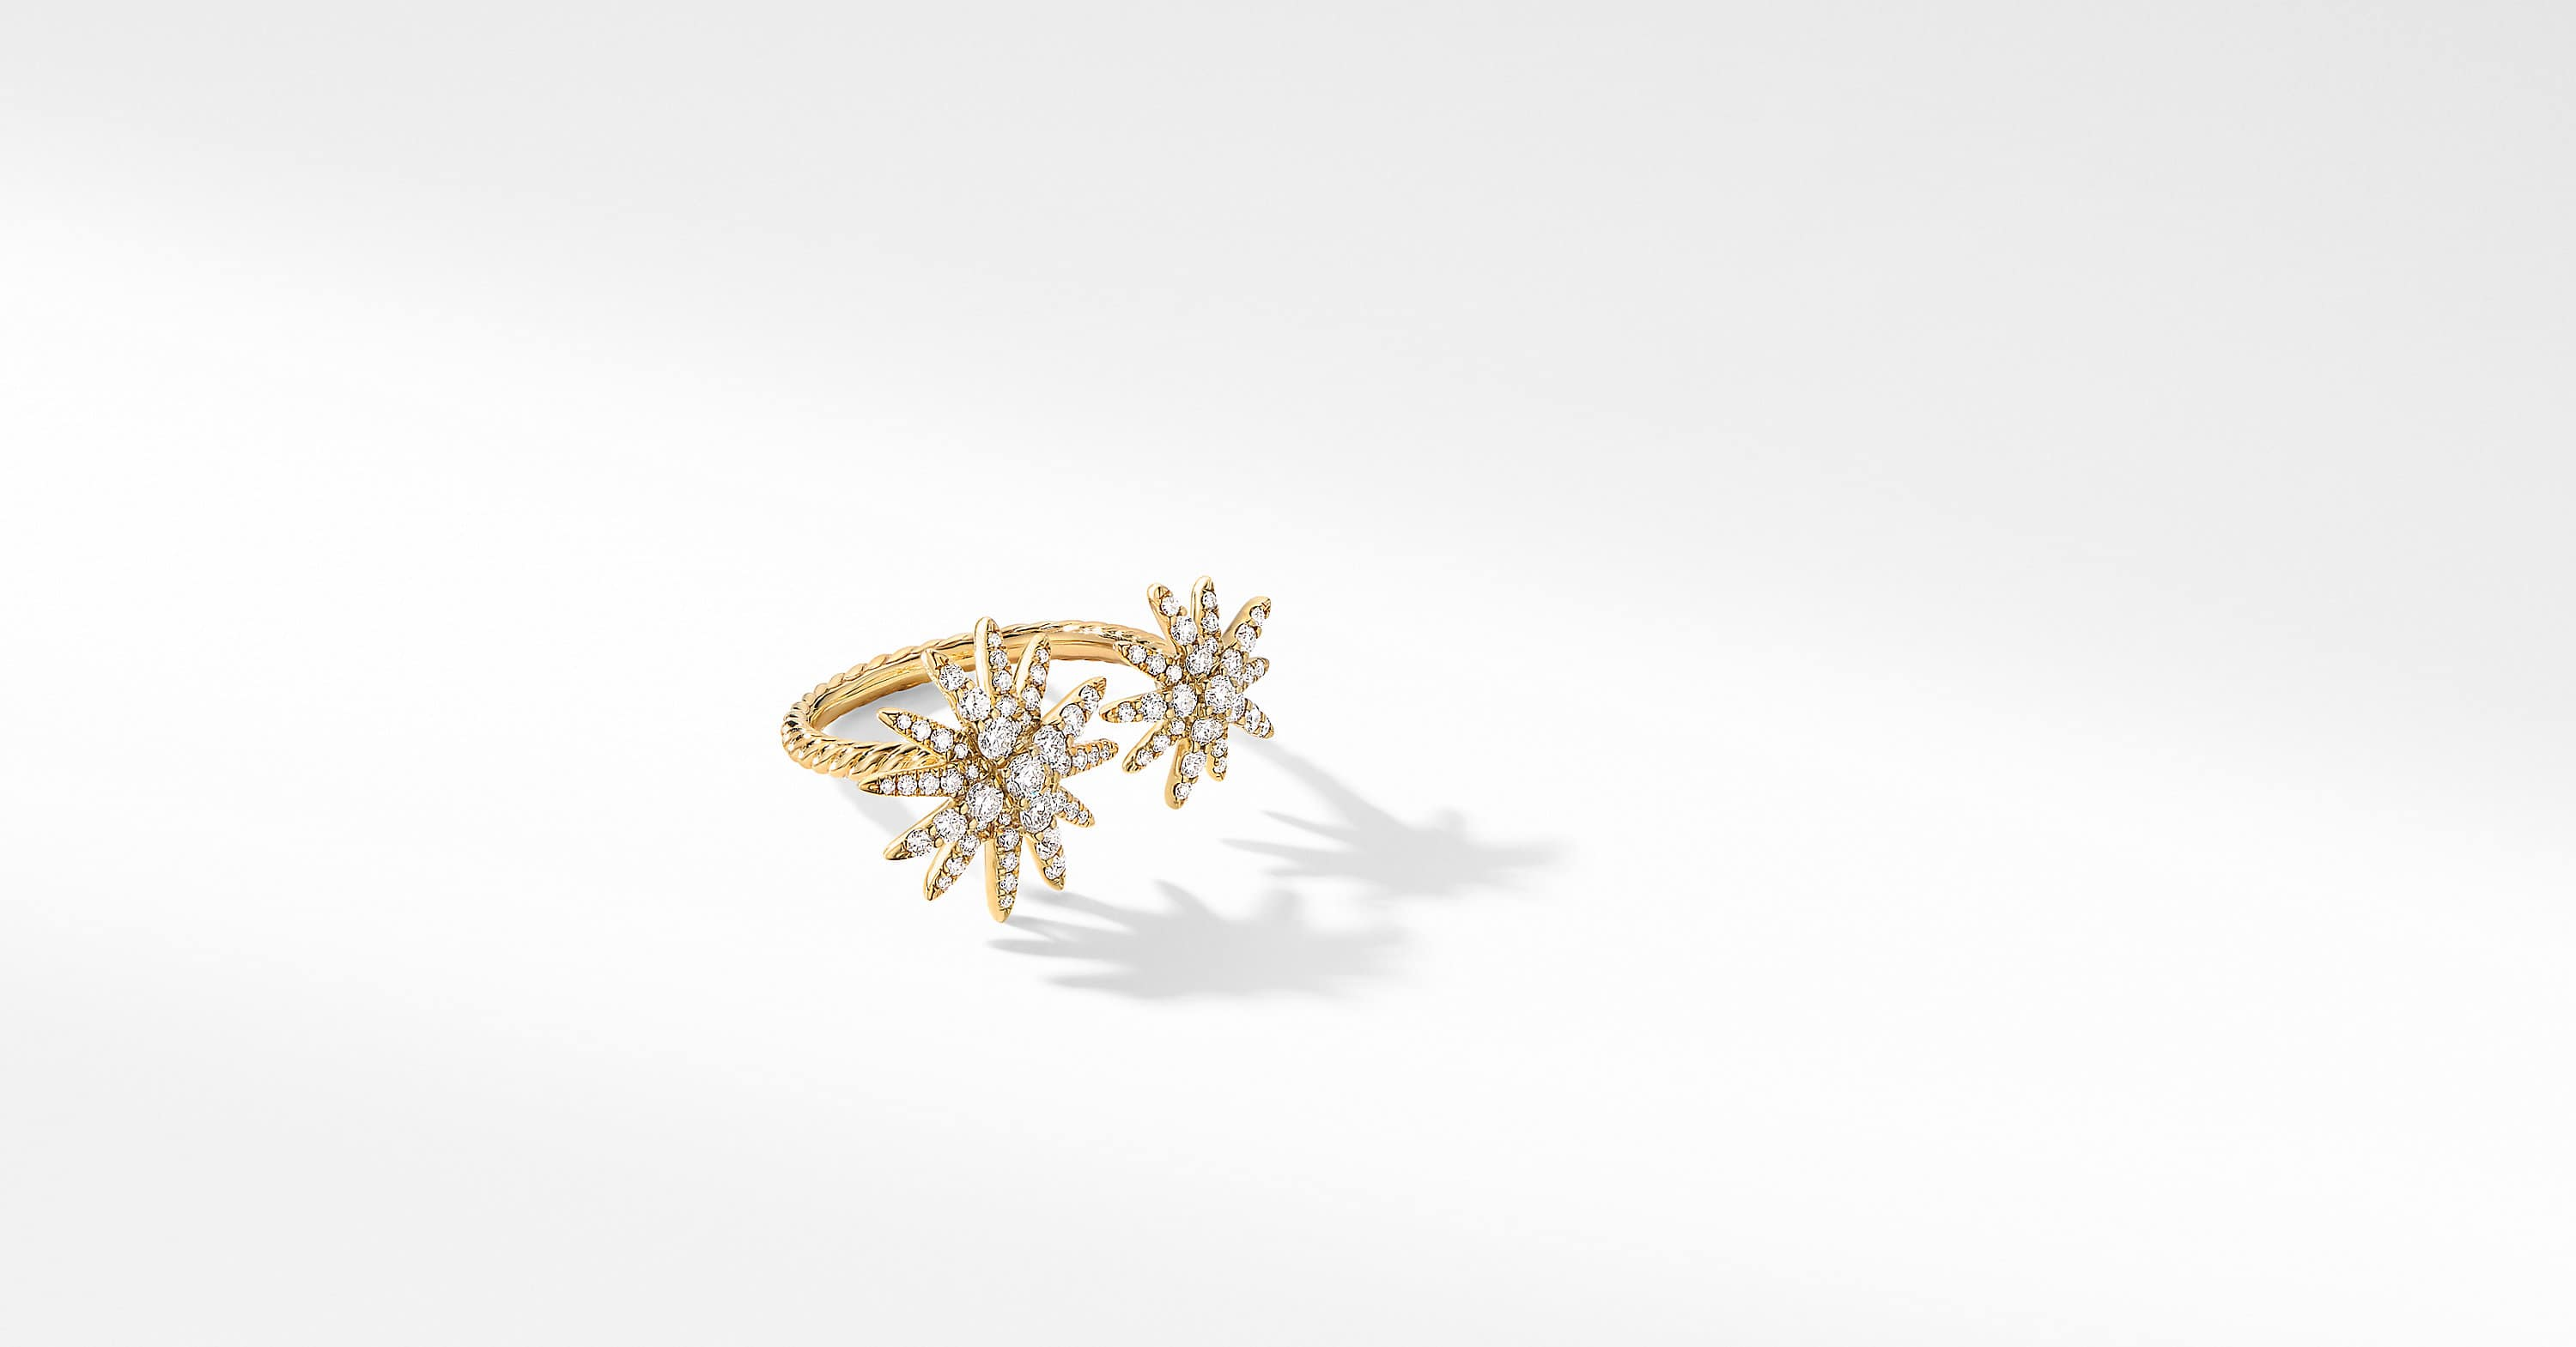 Starburst Bypass Ring in 18K Yellow Gold with Diamonds